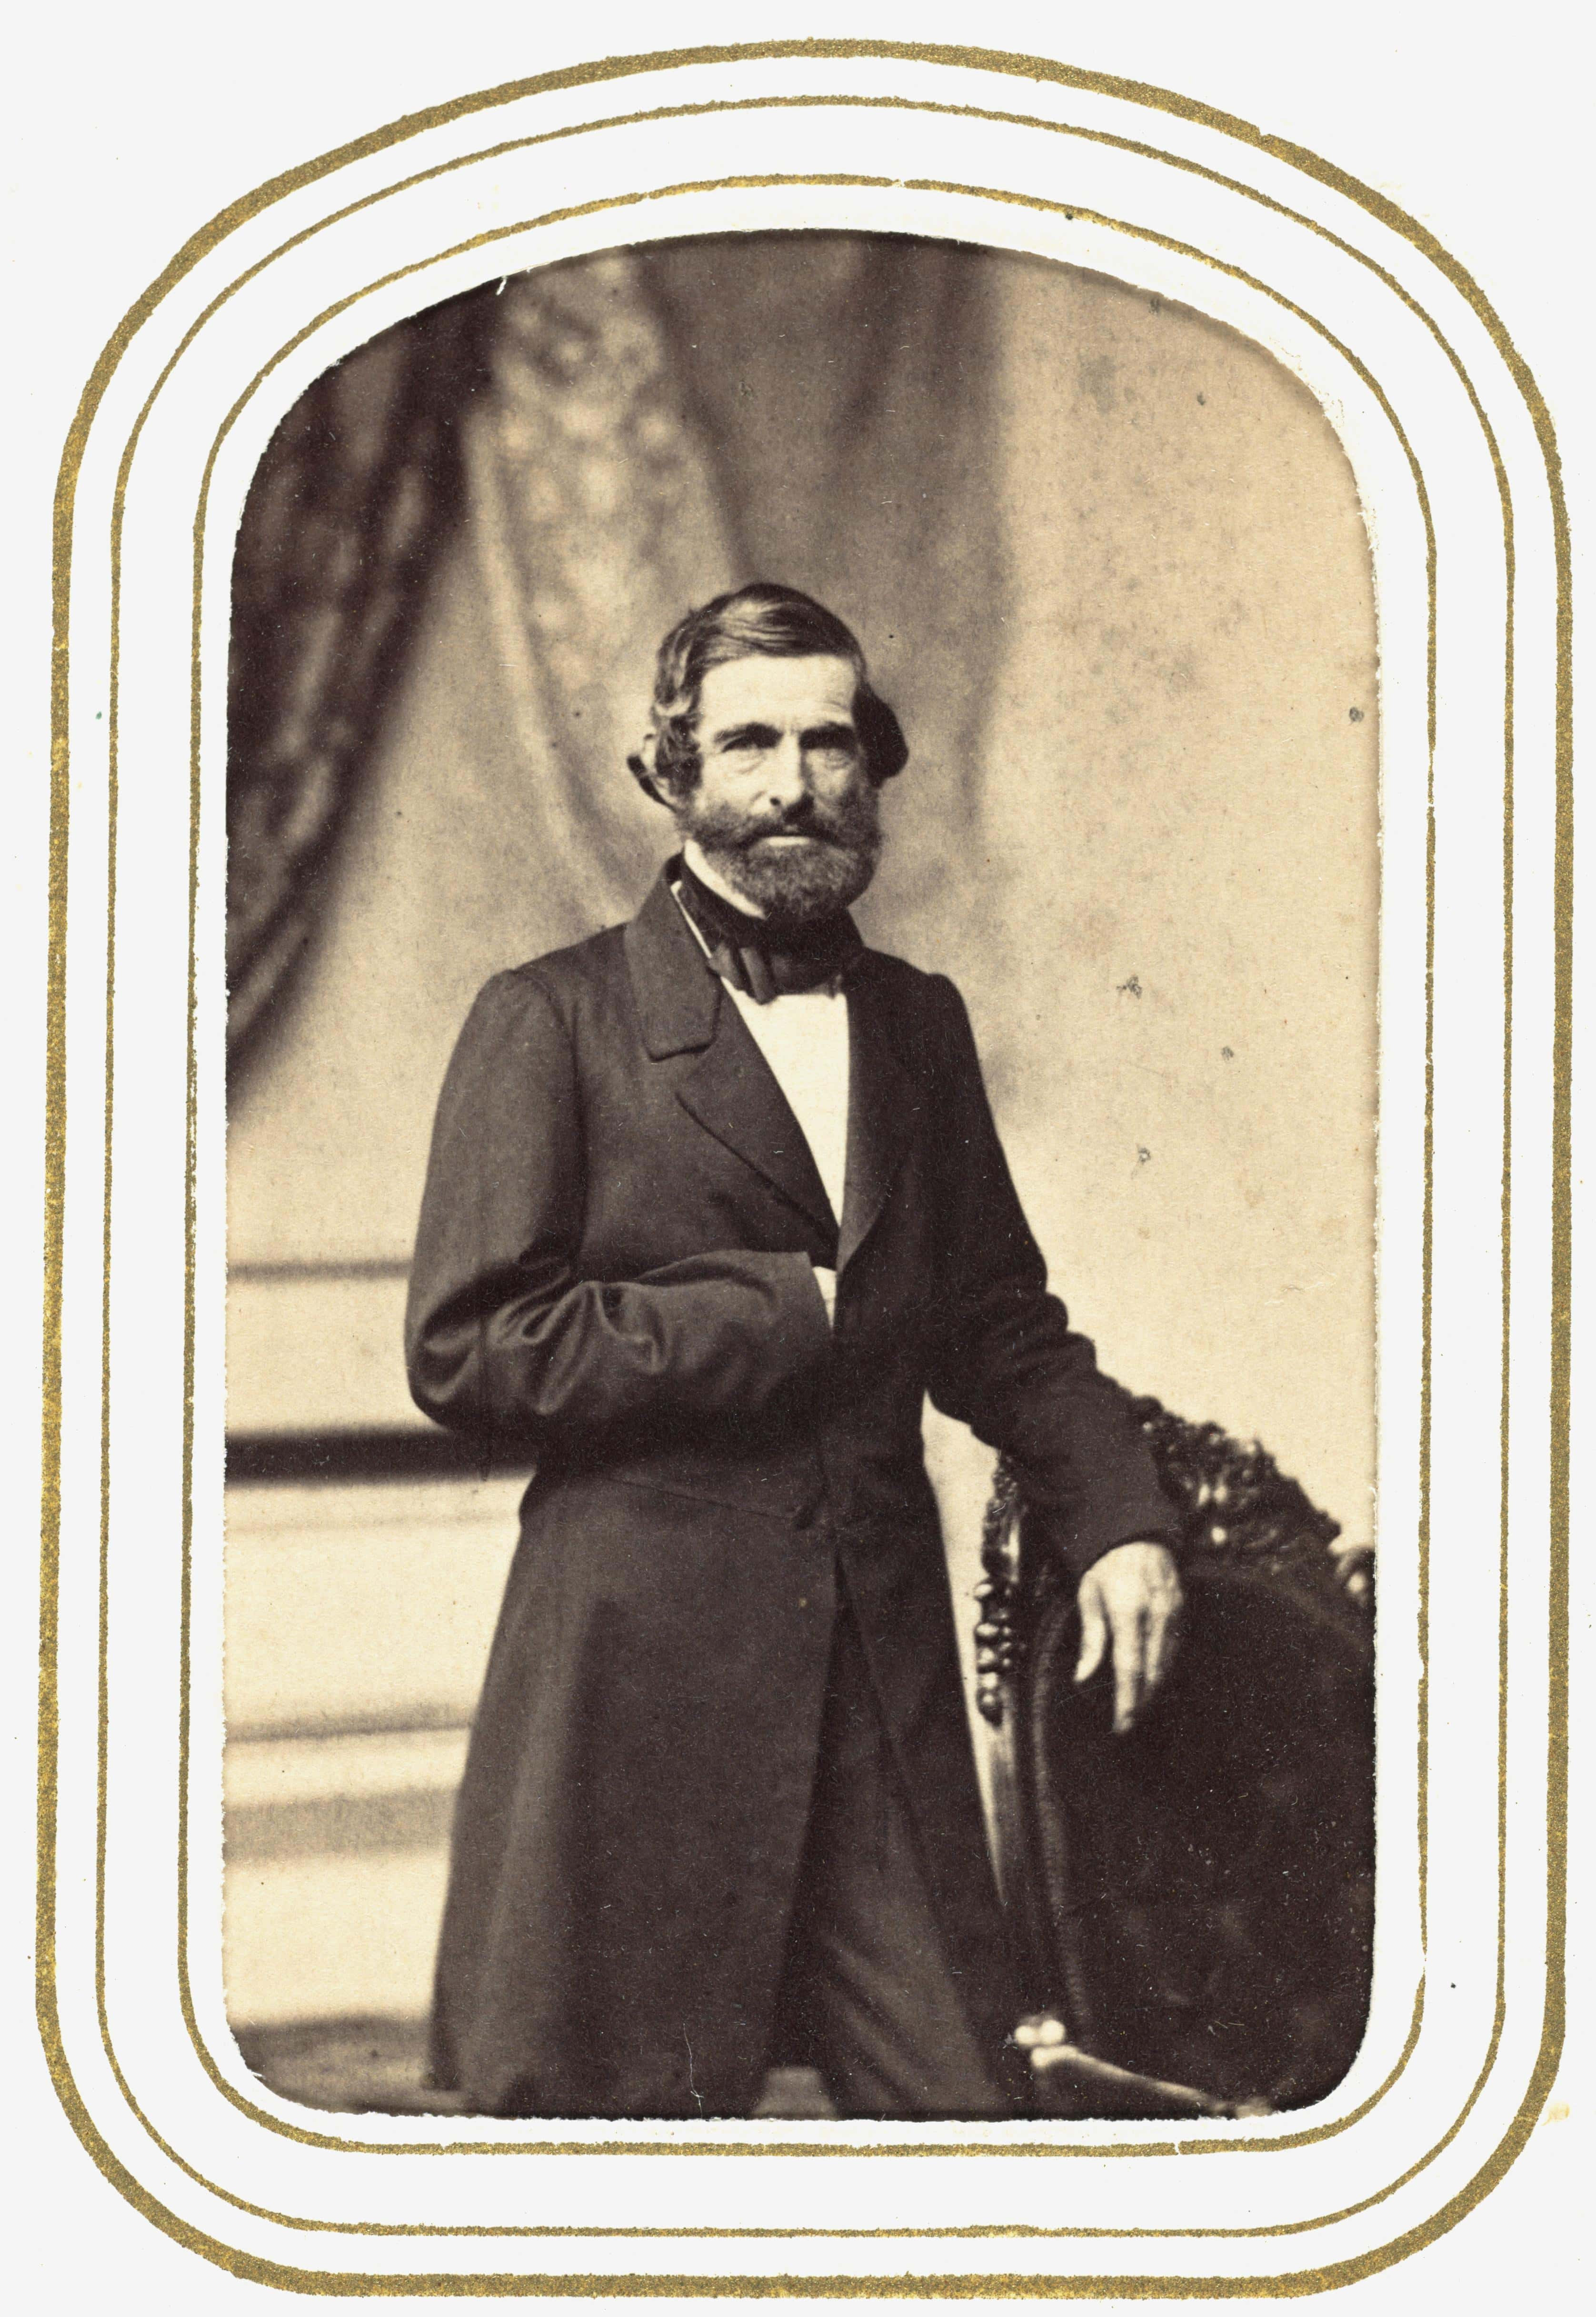 Portrait of Samuel Gridley Howe standing with one arm tucking inside coat.